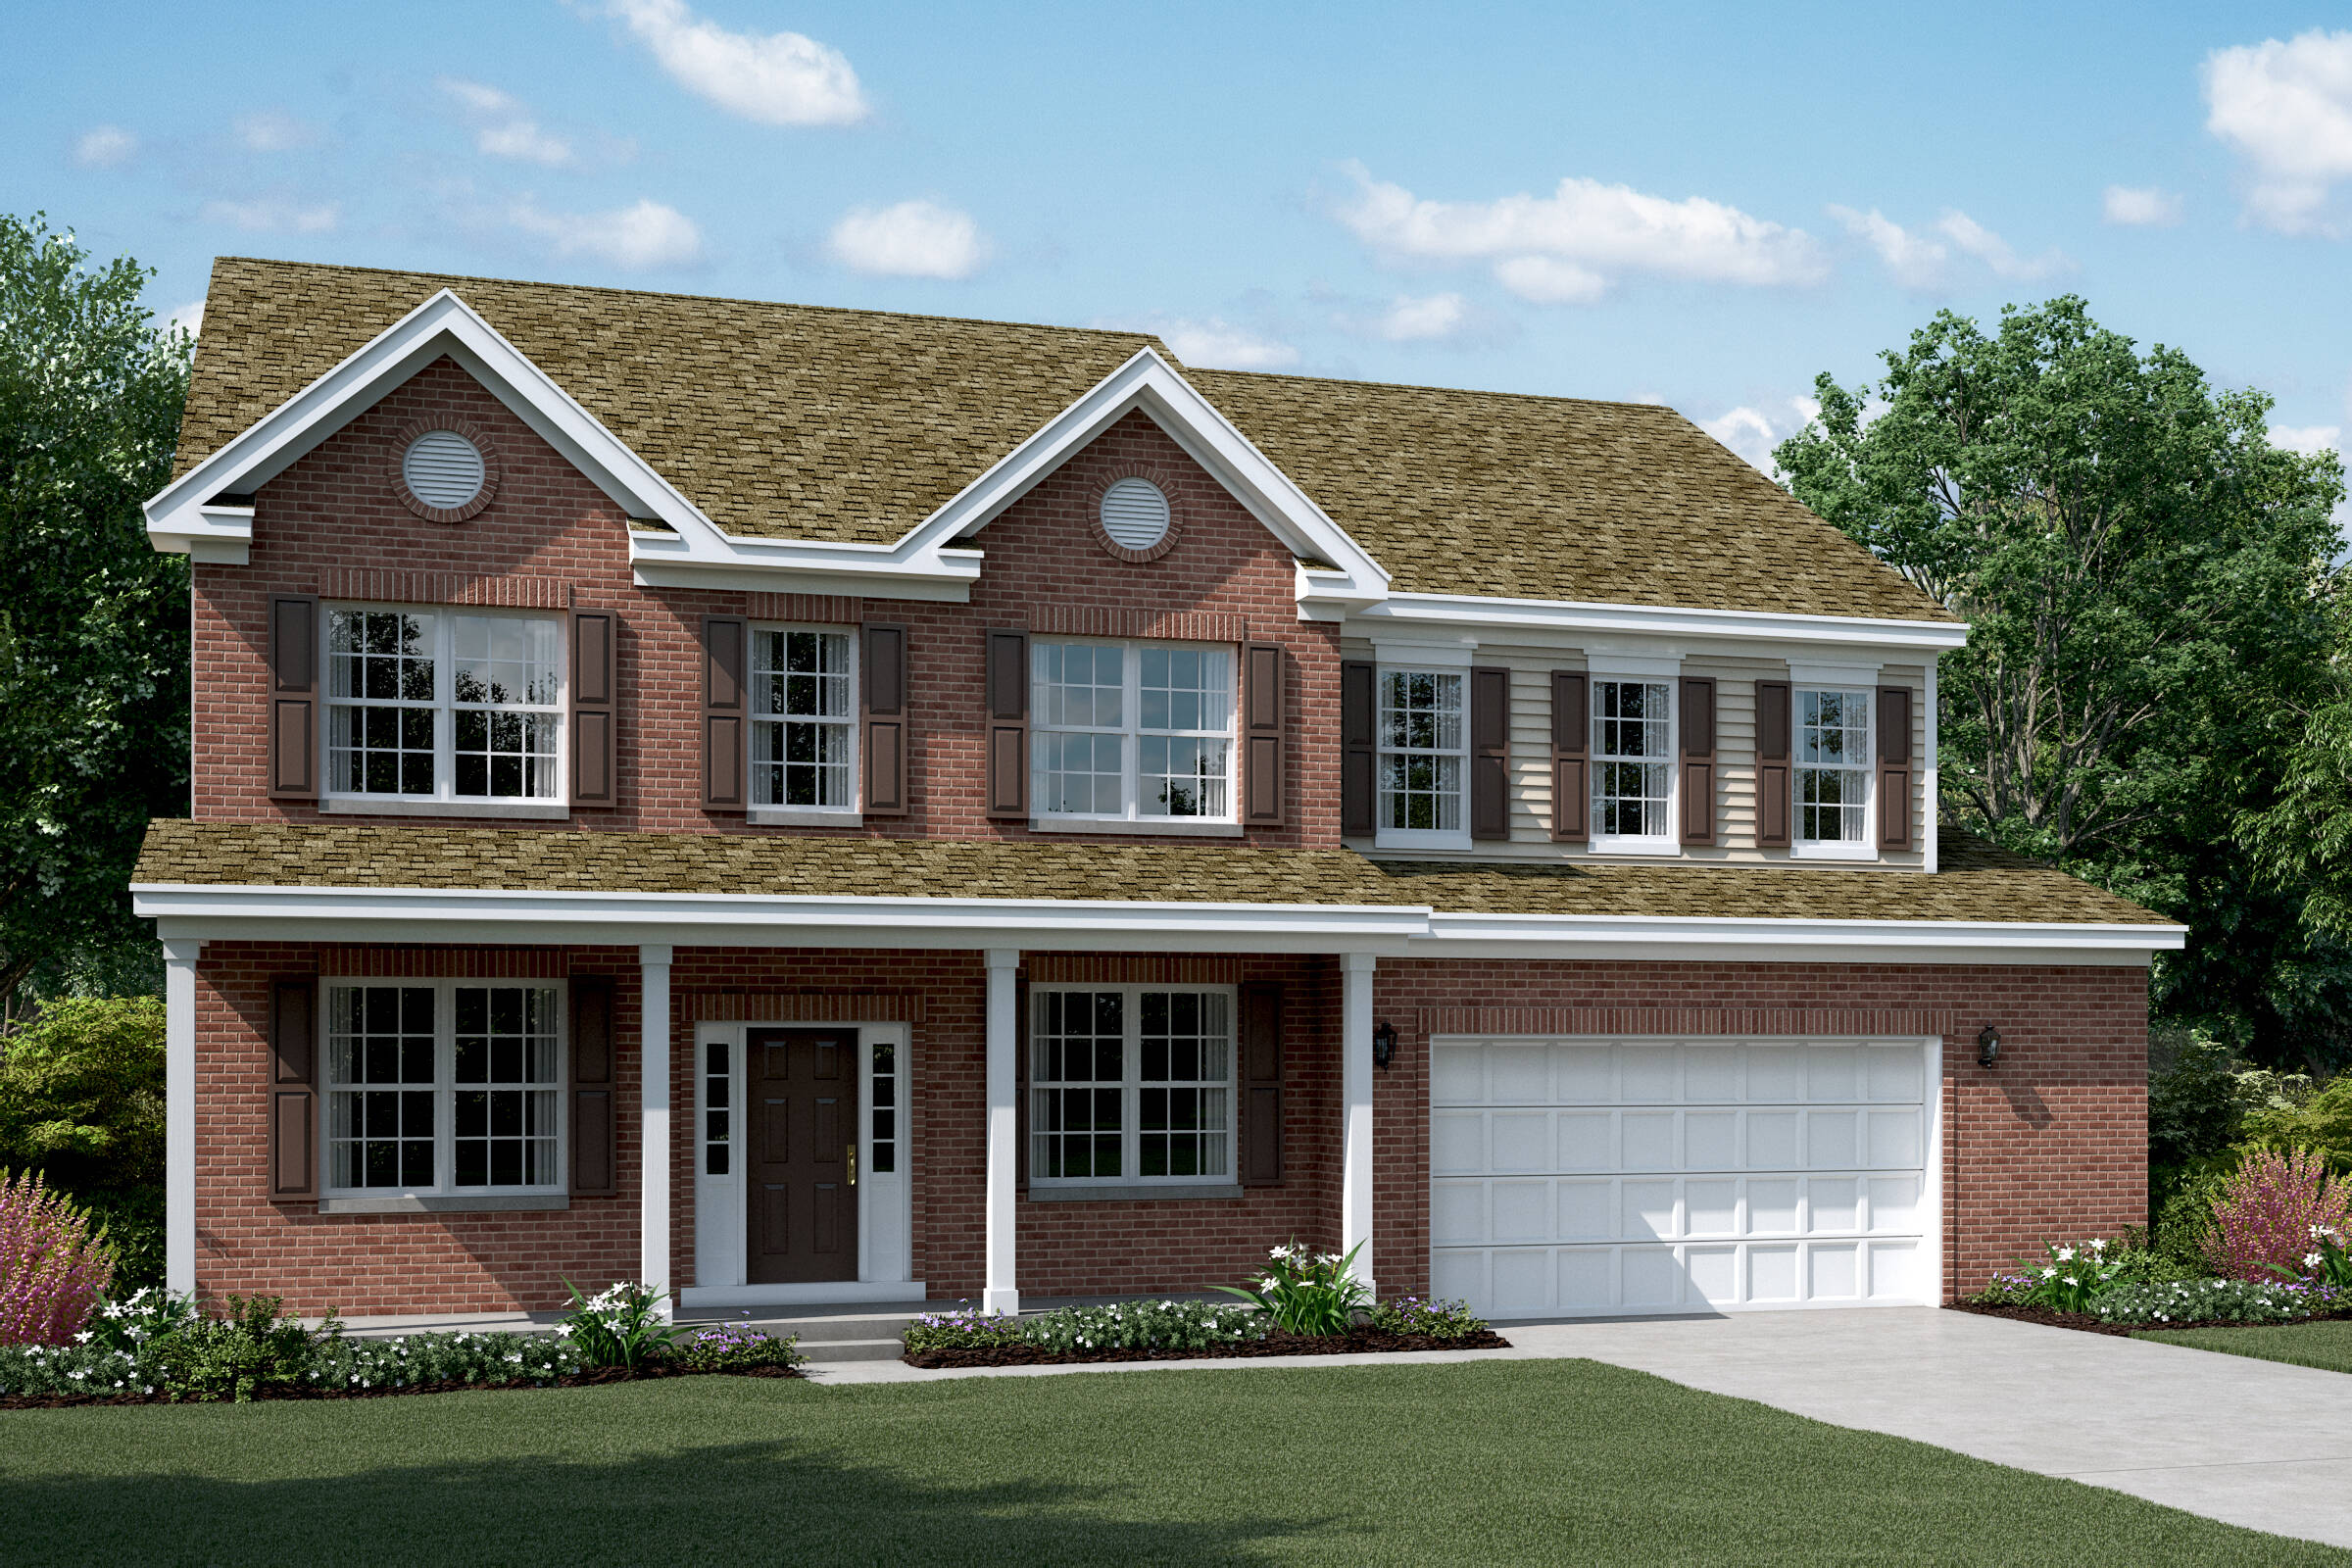 jasper cb new homes manhattan illinois